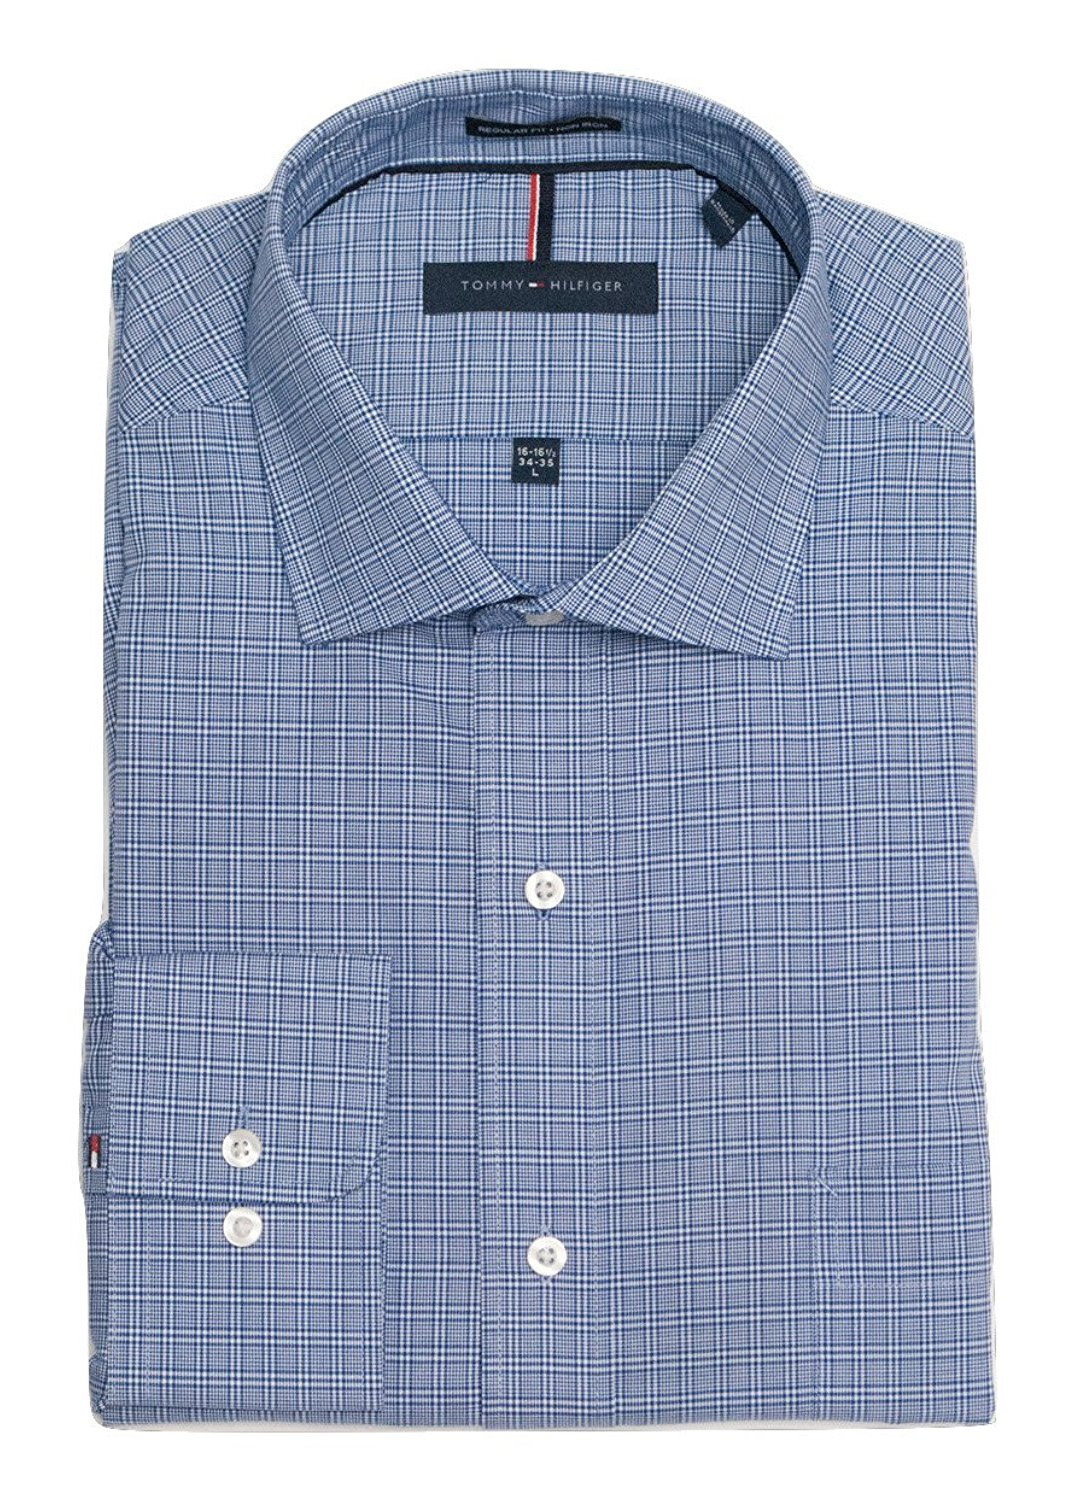 Tommy-Hilfiger-Mens-Long-Sleeve-Regular-Fit-Dress-Shirt miniature 37